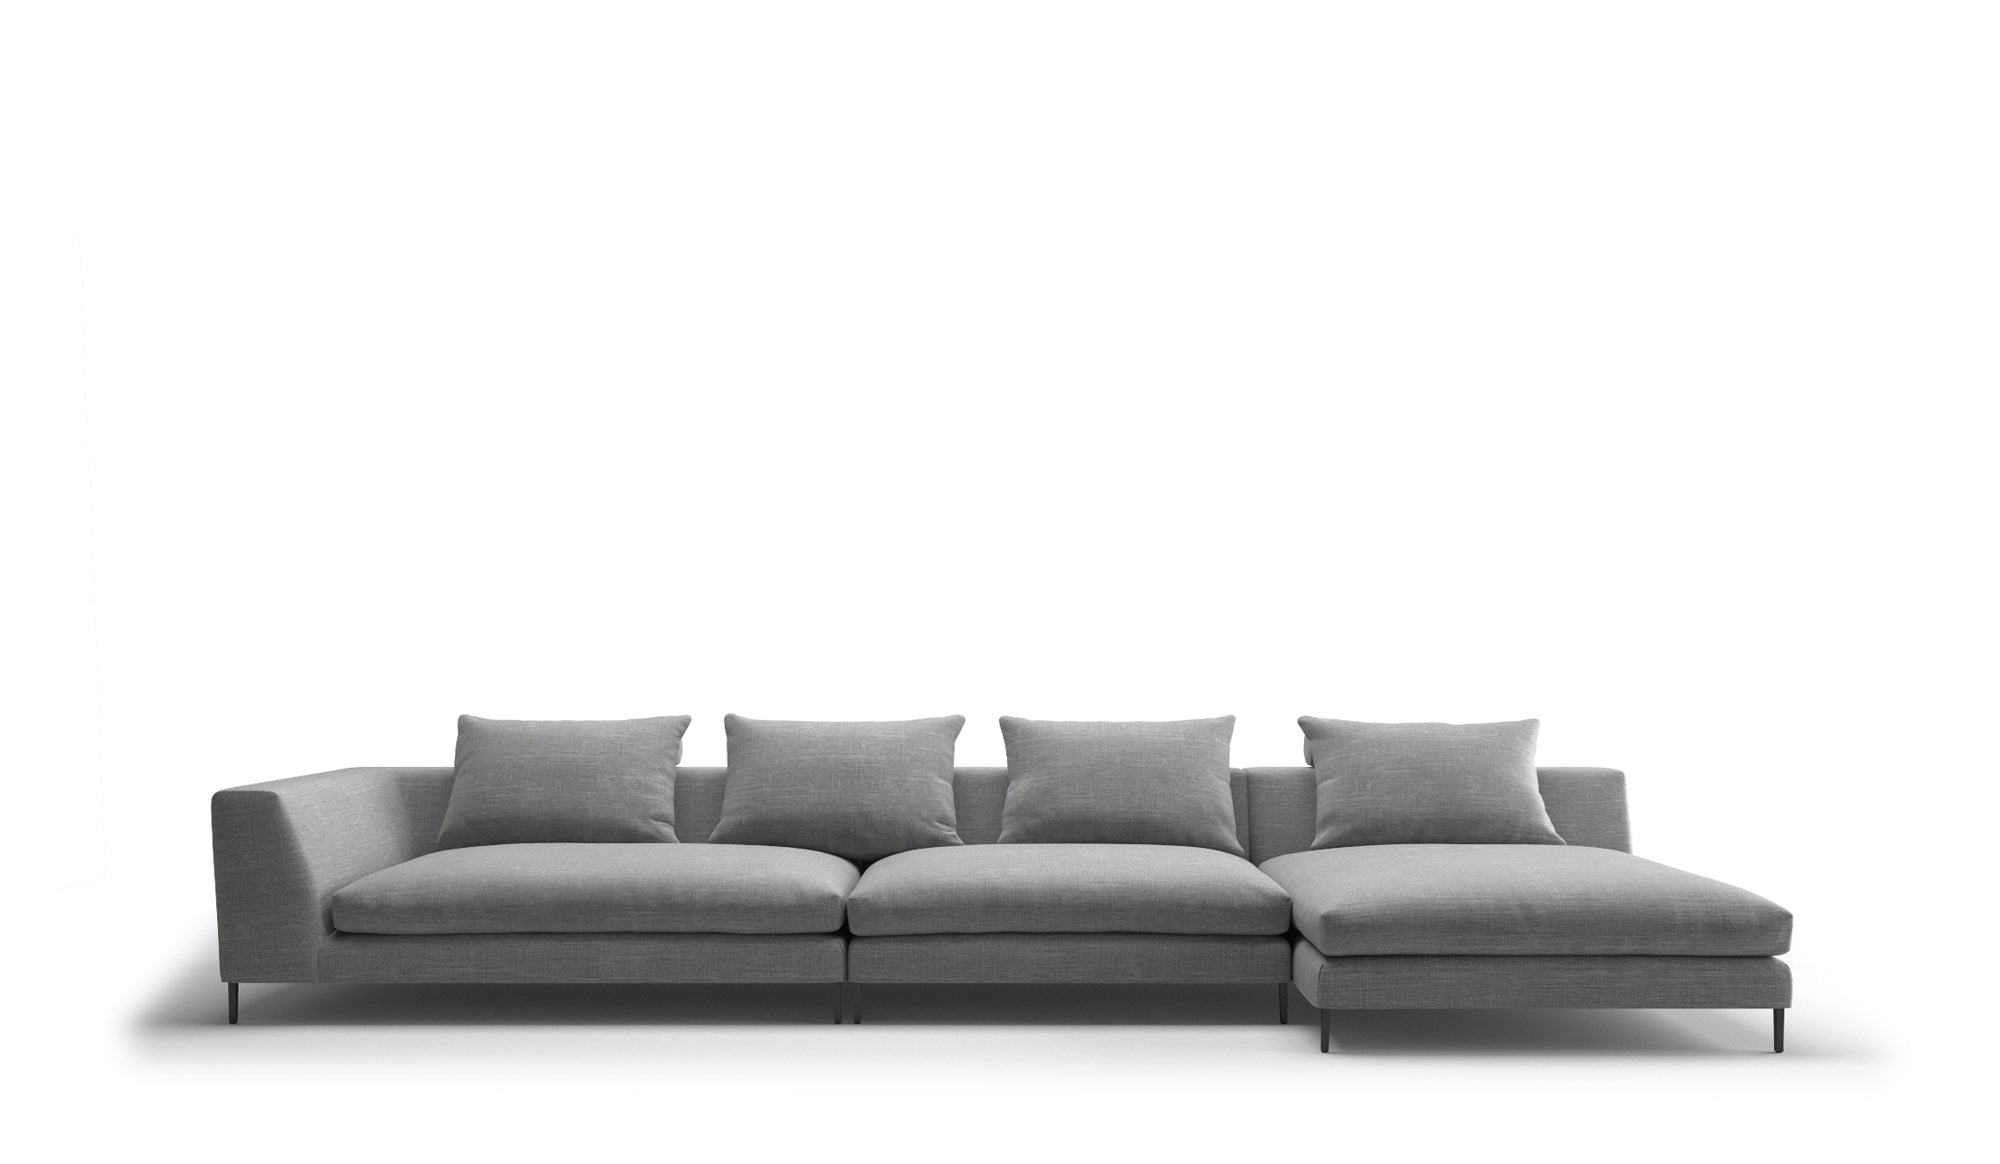 Peak 4 Seater Right Chaise Sofa | Diara Mist